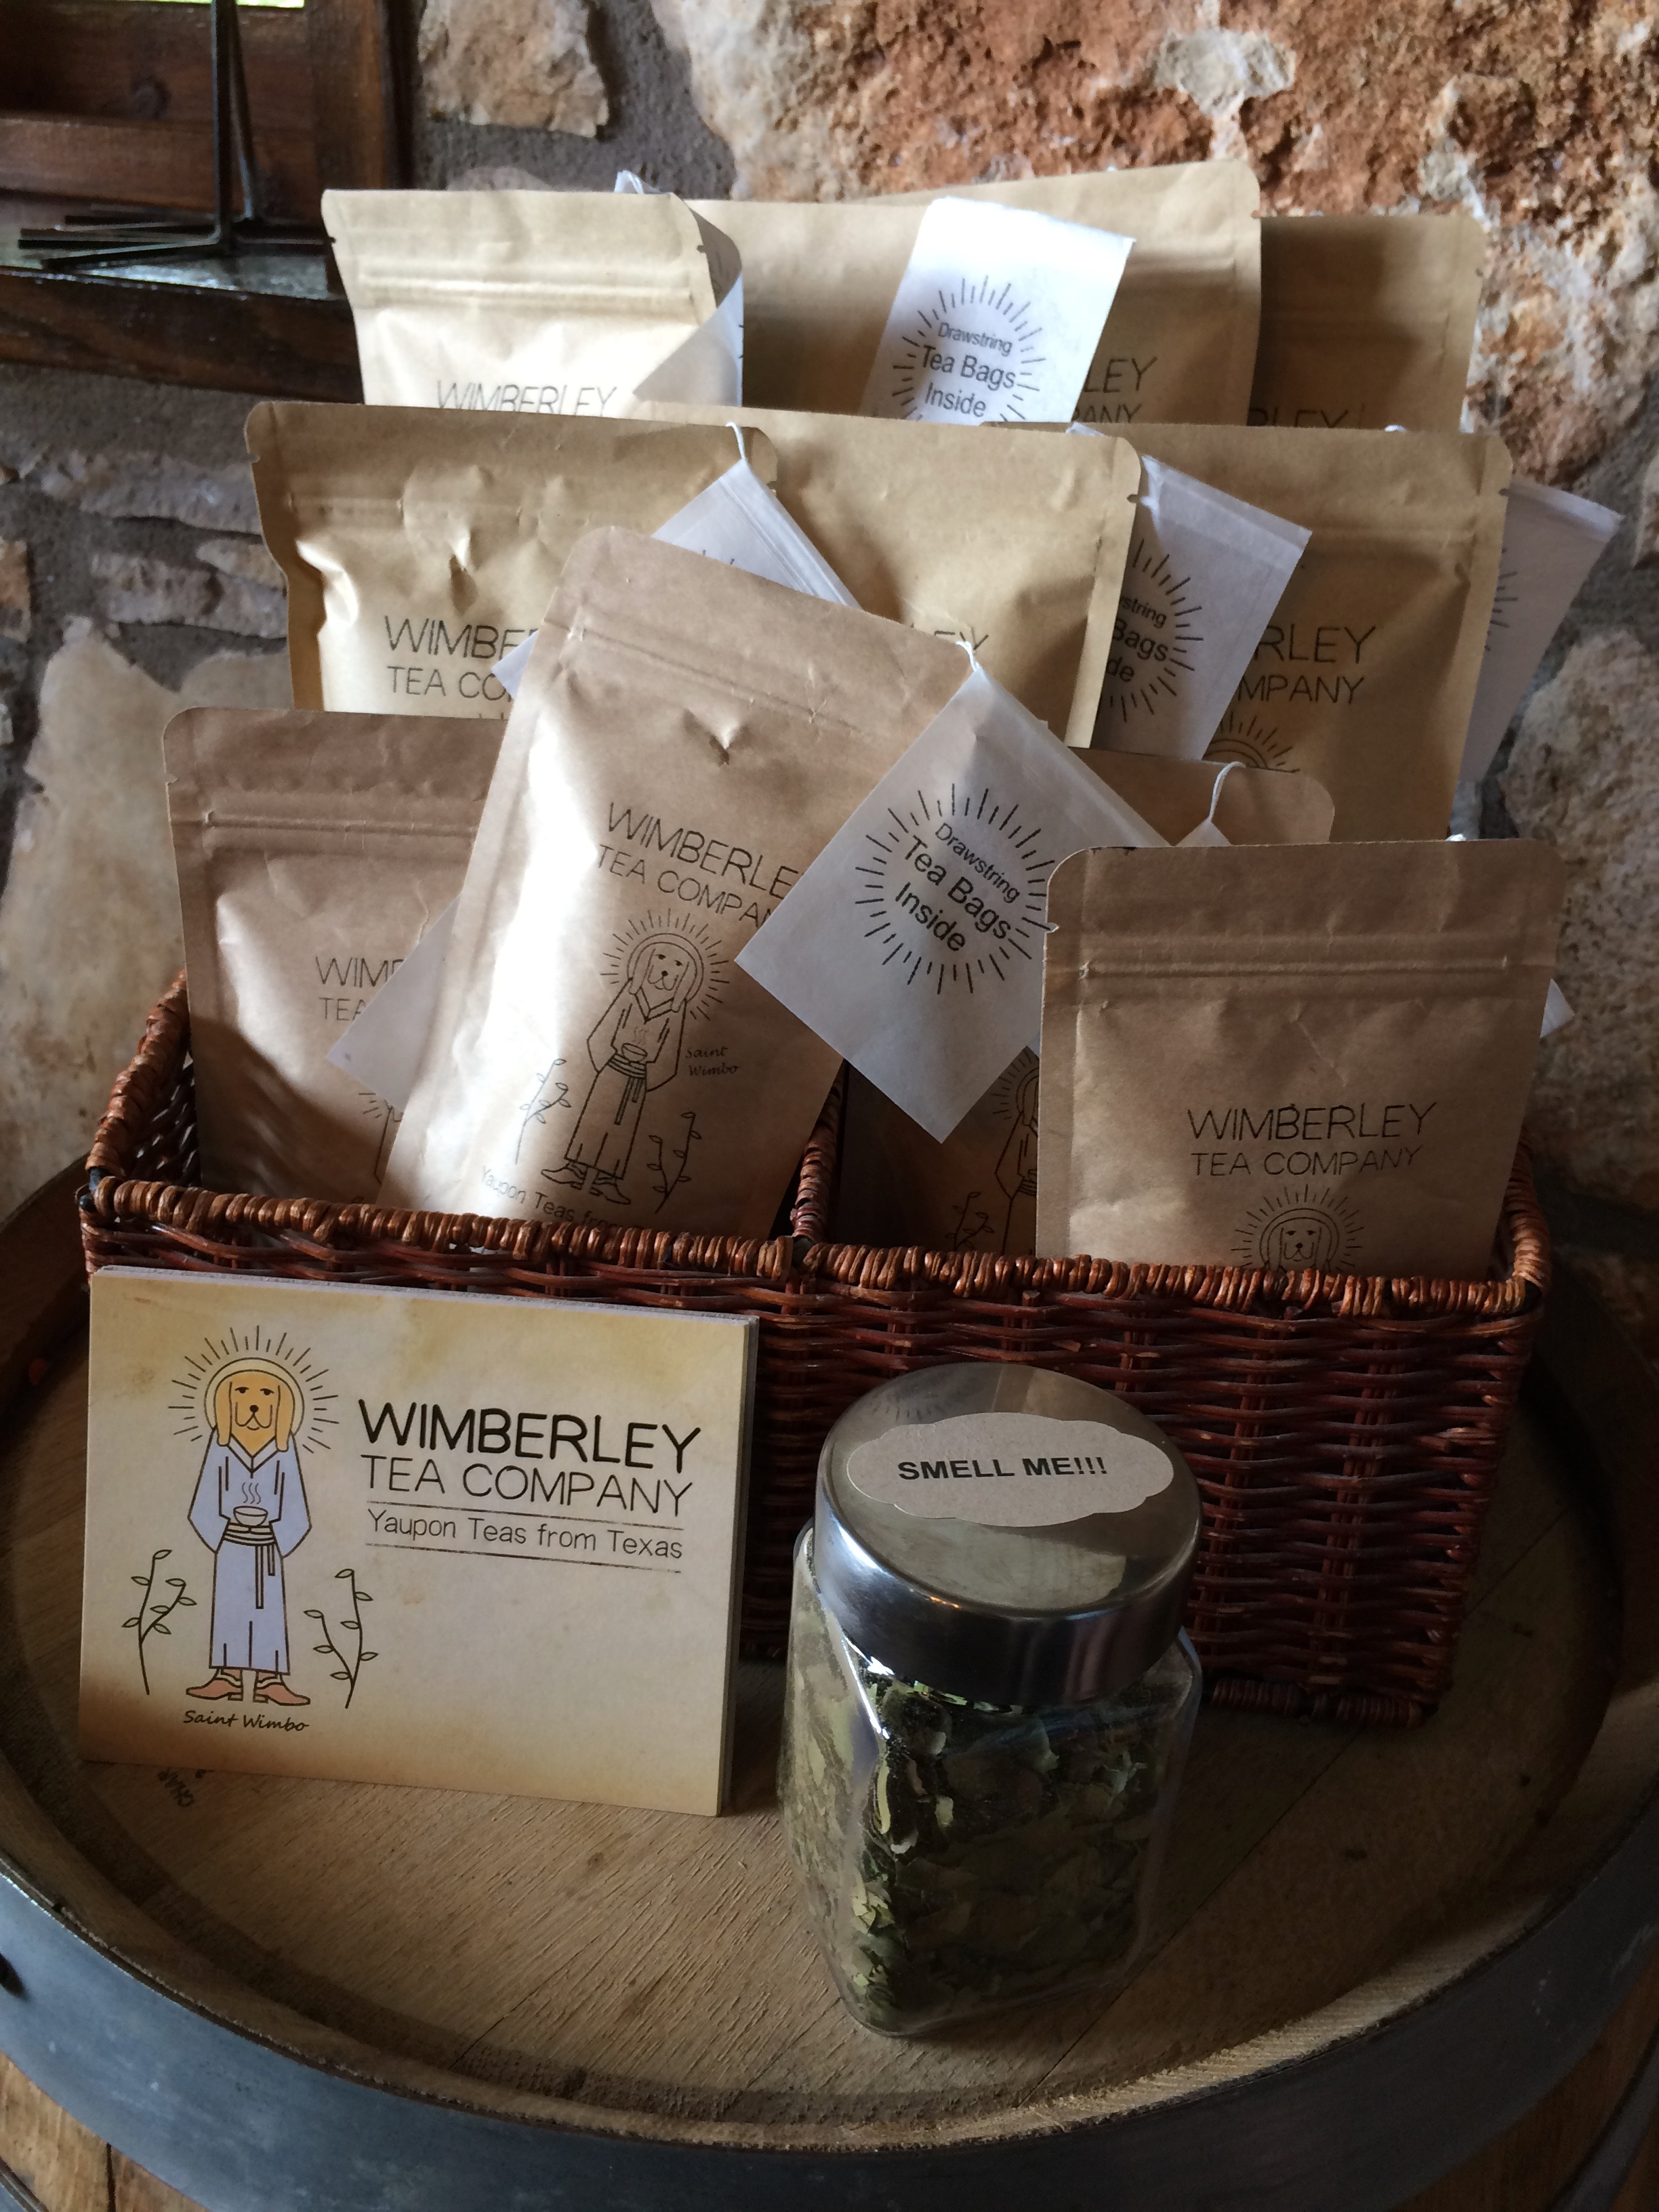 Wimberley_Tea_Company_Yaupon_Tea_for_sale_at_Salt_Lick_Cellars